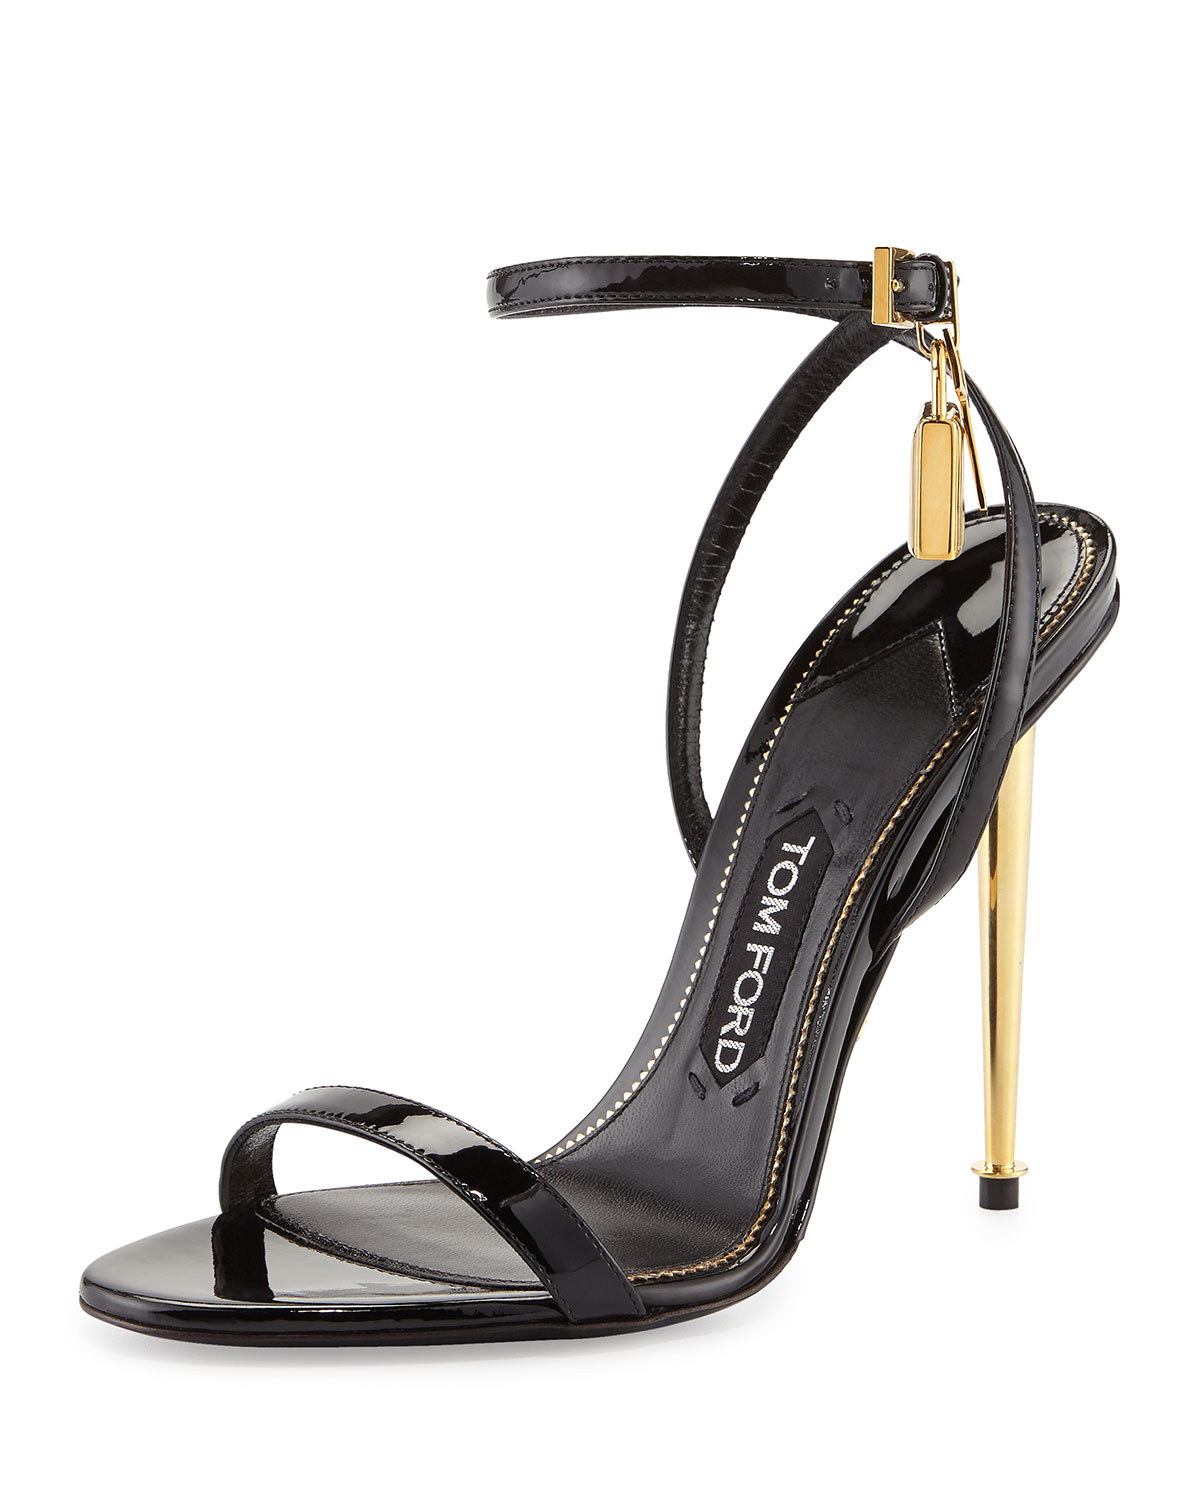 ebccba6a113 TOM FORD Lock Ankle-Wrap Patent 110mm Sandals